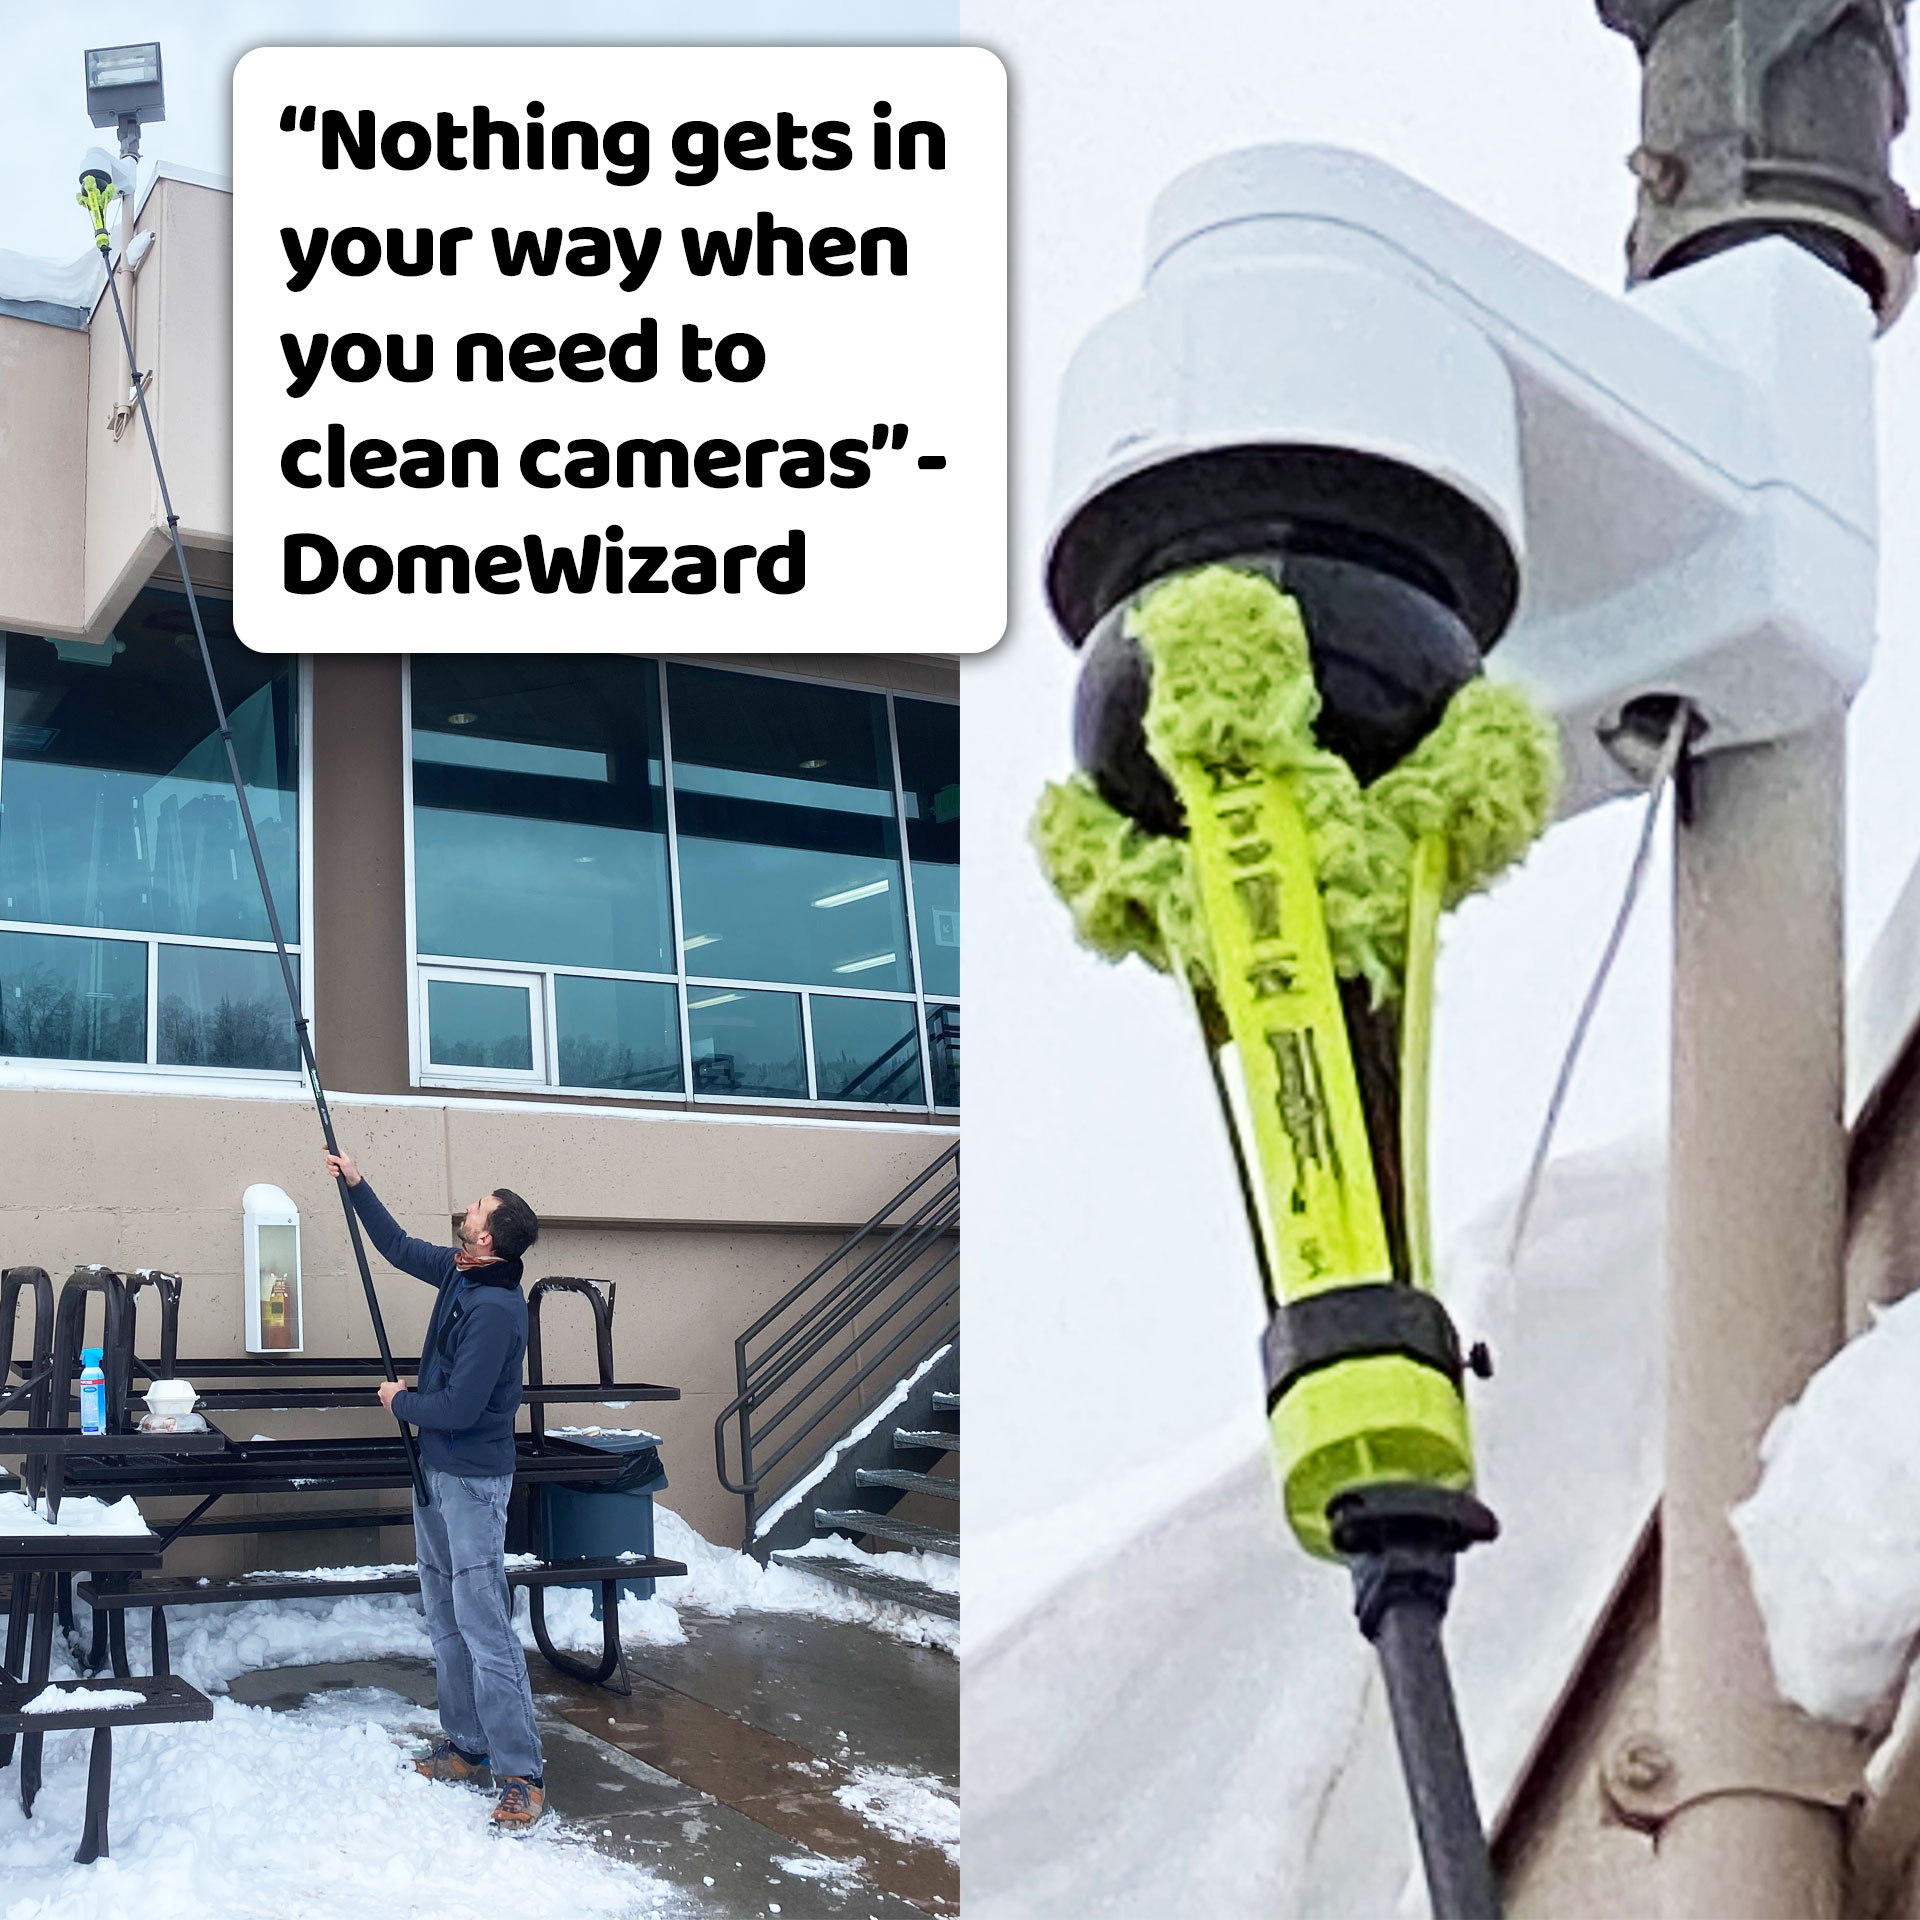 Nothing gets in your way when you need to clean cameras - DomeWizard